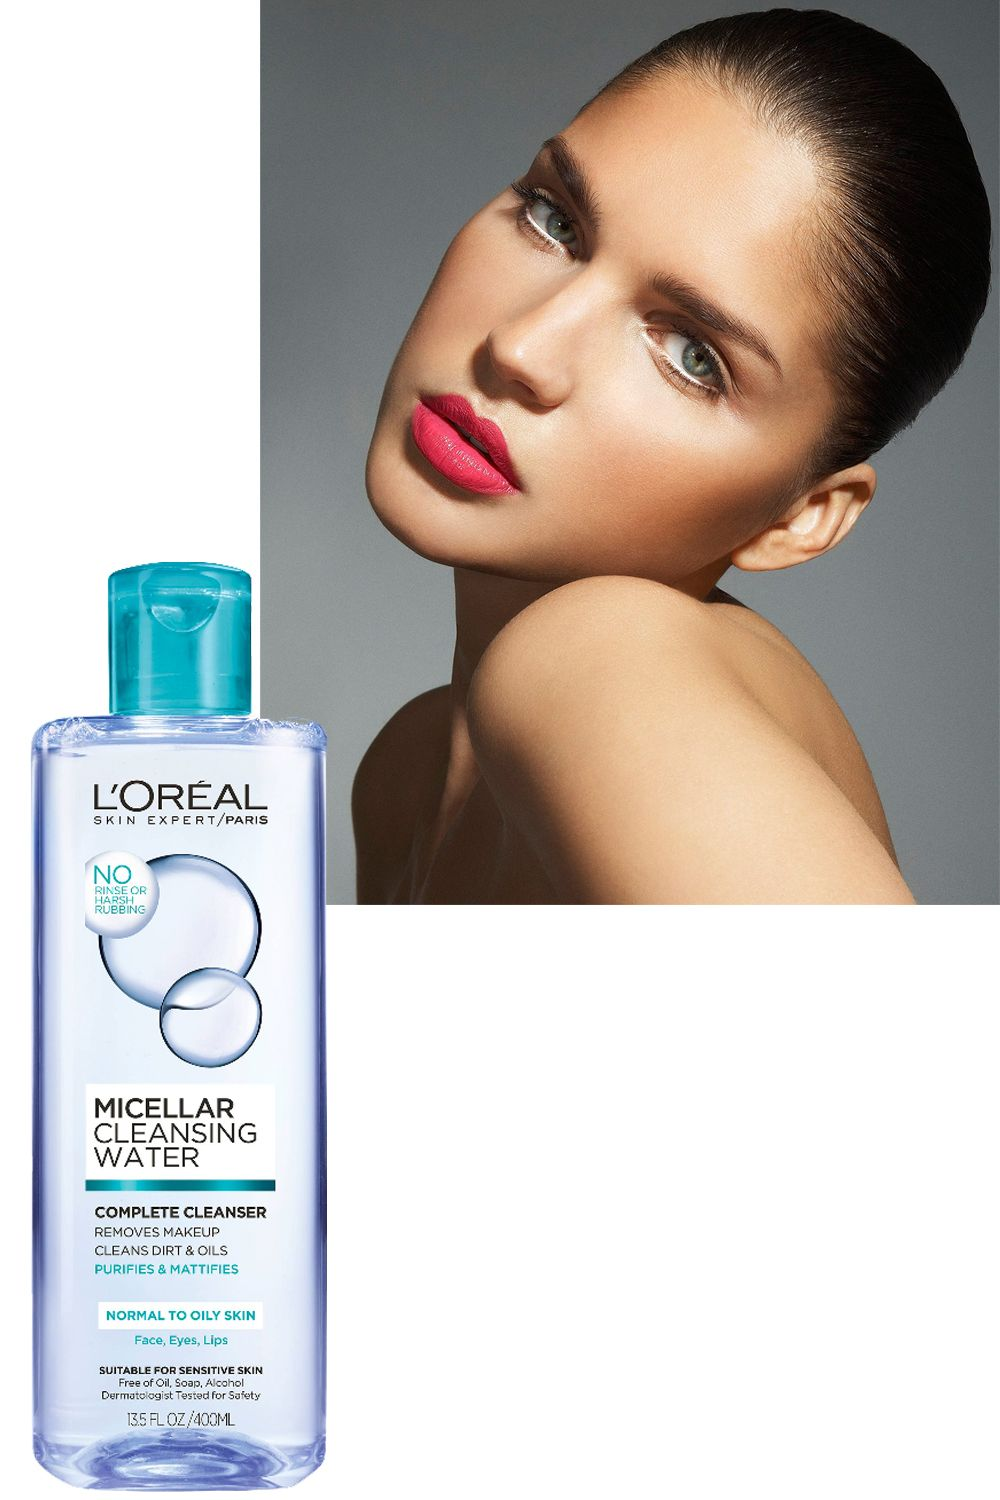 """<p>Micellar water—a&nbsp&#x3B;soap-free, no-rinse&nbsp&#x3B;facial cleanser—contains micelles,&nbsp&#x3B;molecules that dissolve makeup,&nbsp&#x3B;dirt, and other grime. Even stubborn&nbsp&#x3B;mascara breaks down in a&nbsp&#x3B;flash. We like <a href=""""http://www.lorealparisusa.com/products/skin-care/products/facial-cleansers/micellar-cleansing-water-complete-cleanser-waterproof-all-skin-types.aspx?shade=Complete-Cleanser-Waterproof-All-Skin-Types"""" target=""""_blank"""" data-tracking-id=""""recirc-text-link"""">L'Oréal Paris Micellar&nbsp&#x3B;Cleansing Water</a> ($10).</p>"""